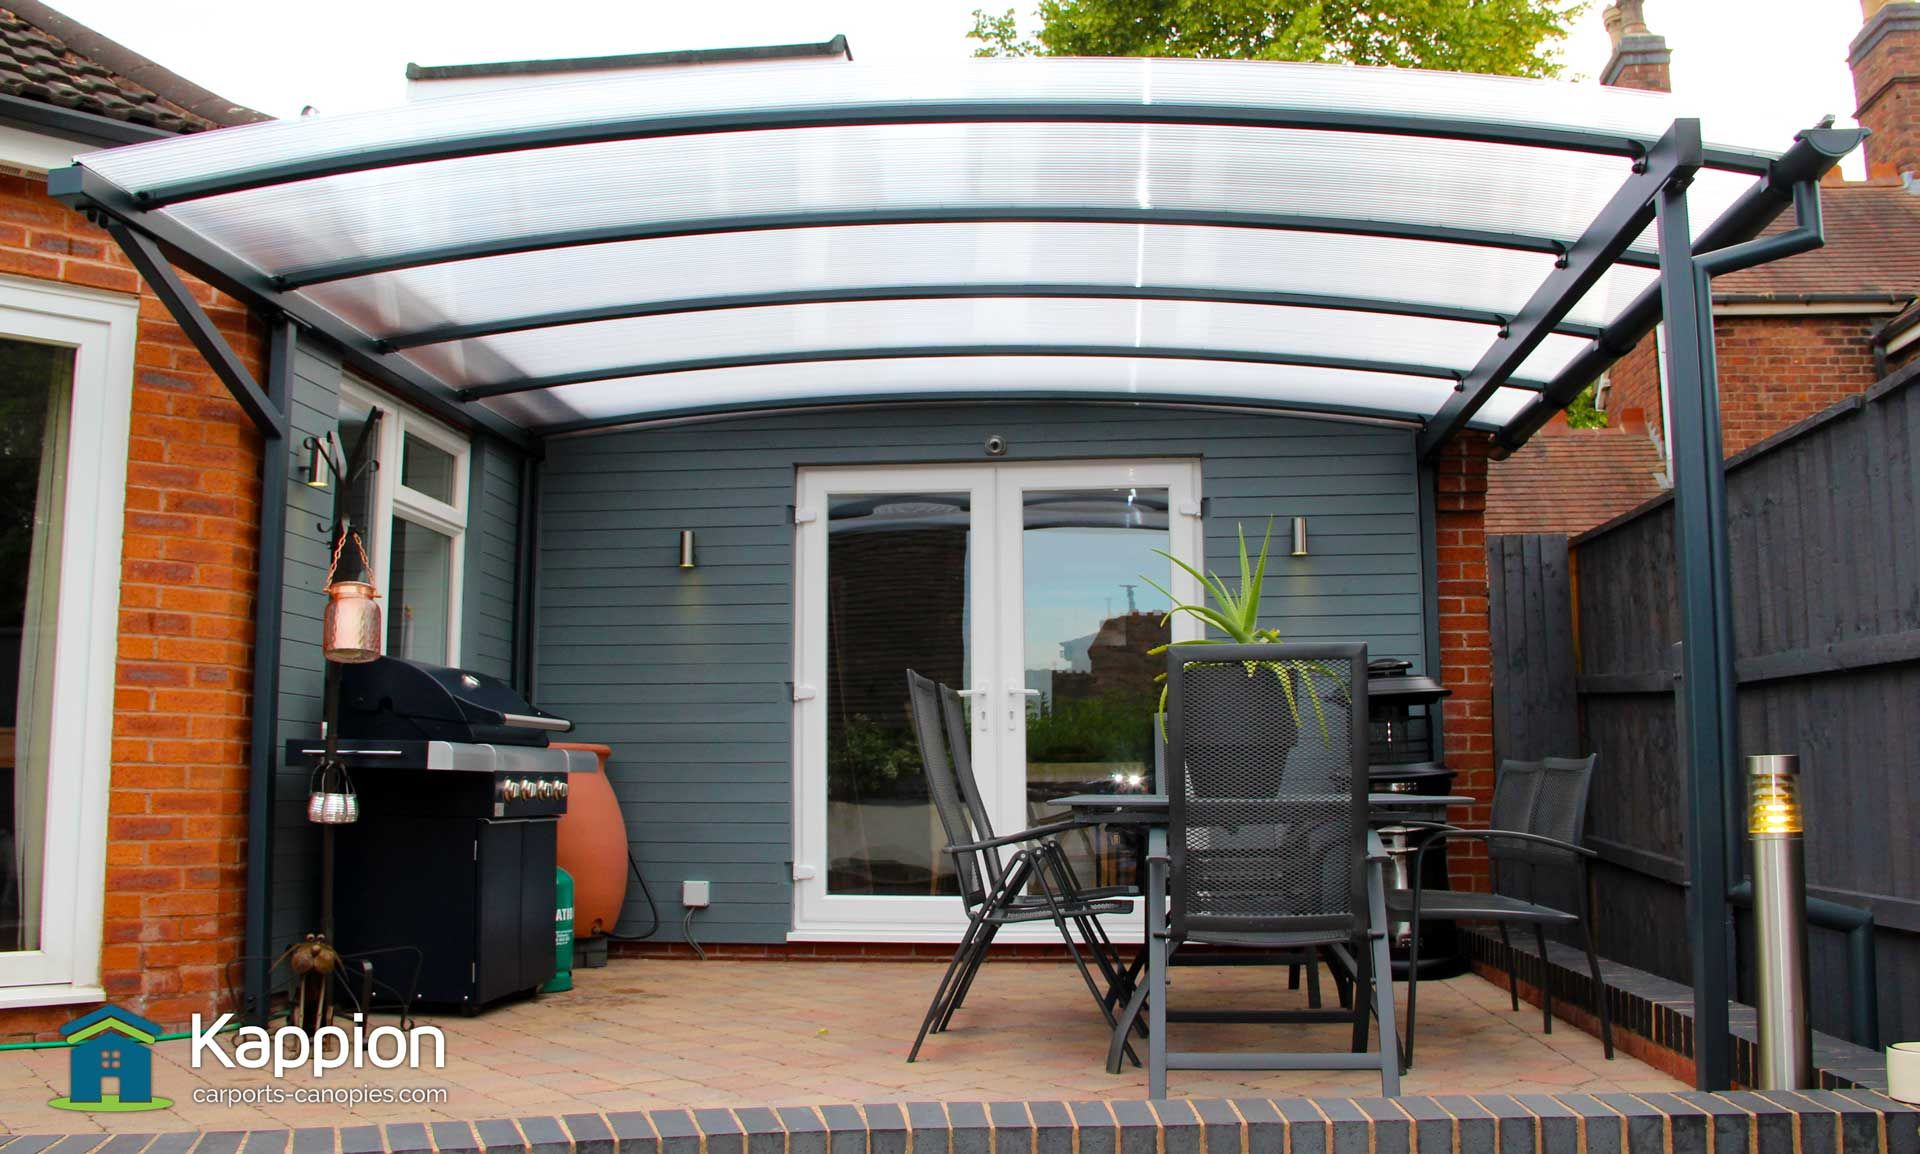 With summer on the horizon our patio canopies will cover any